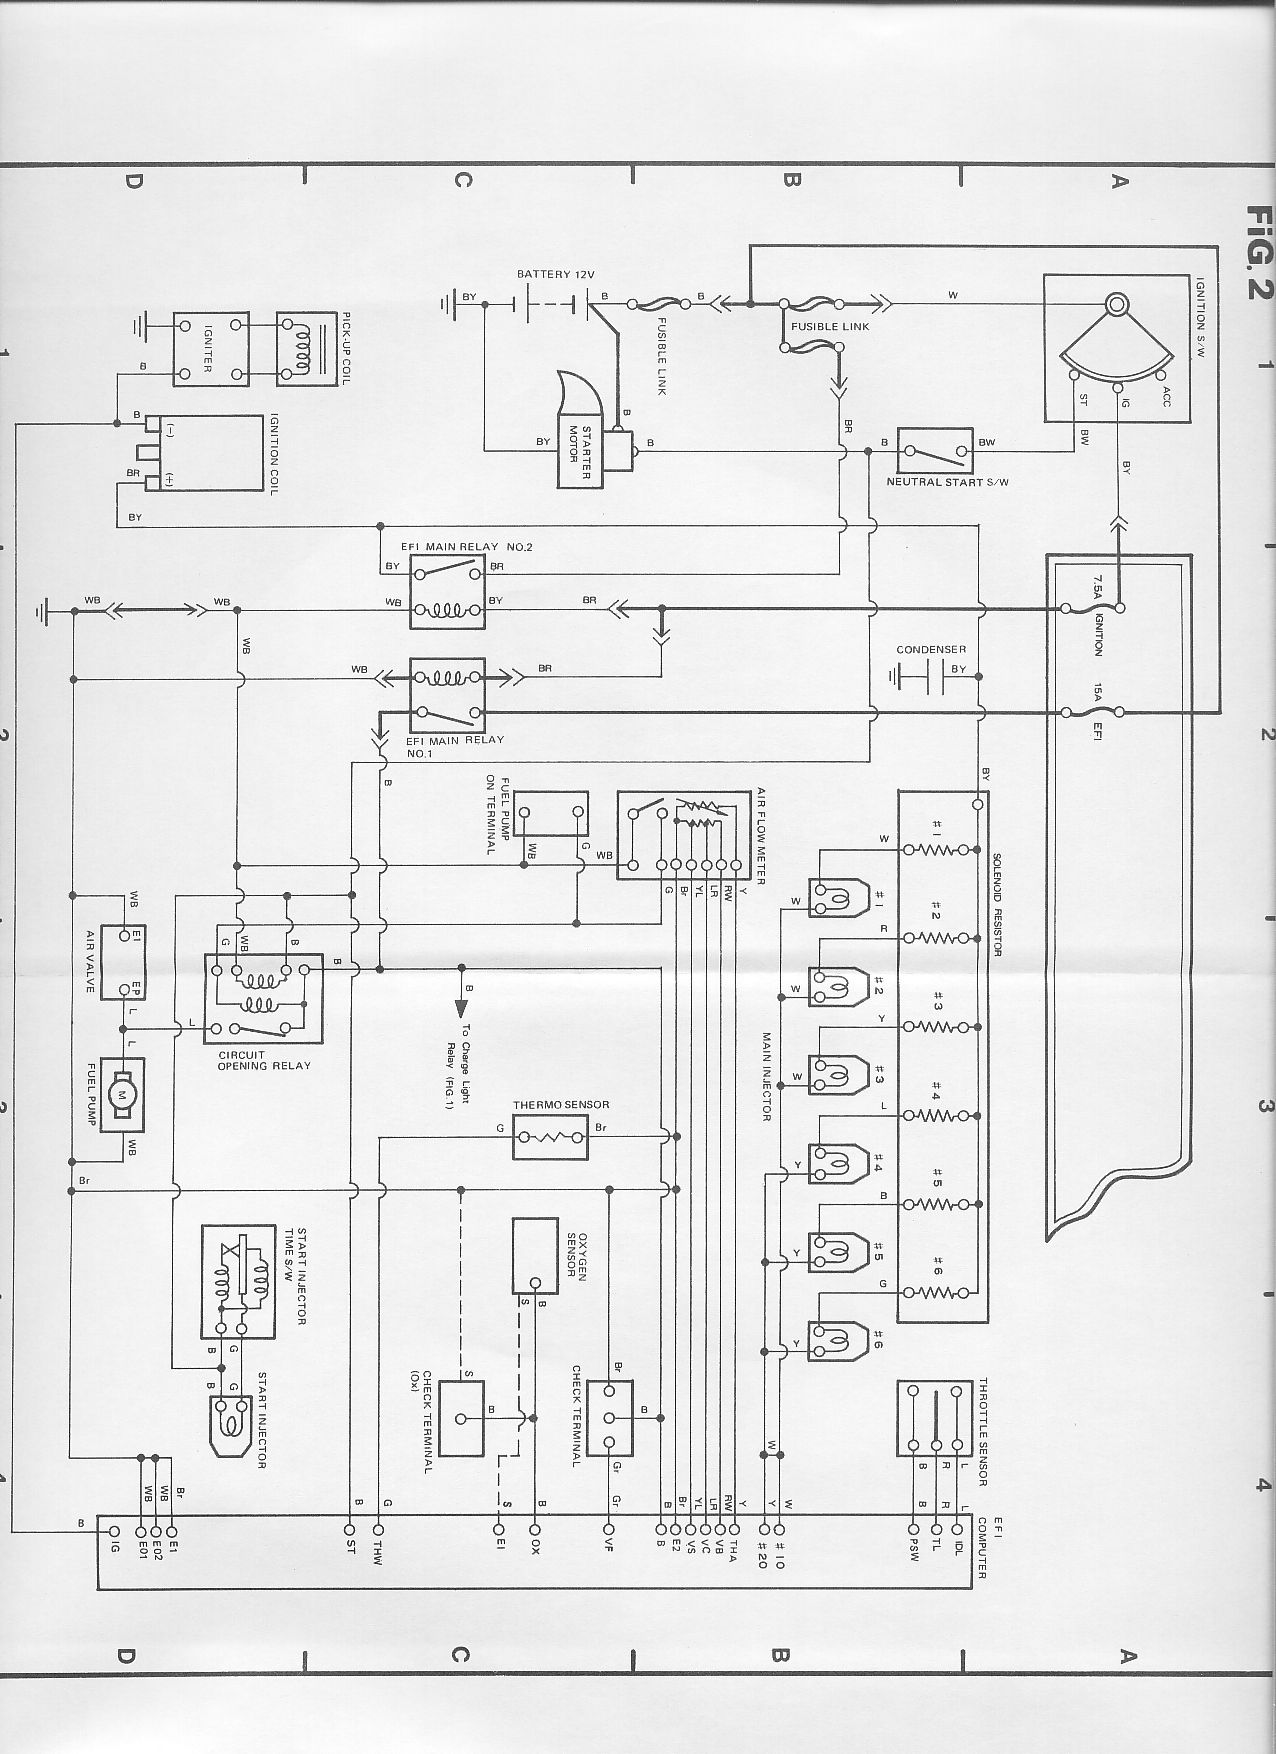 1985 toyota cressida engine diagram